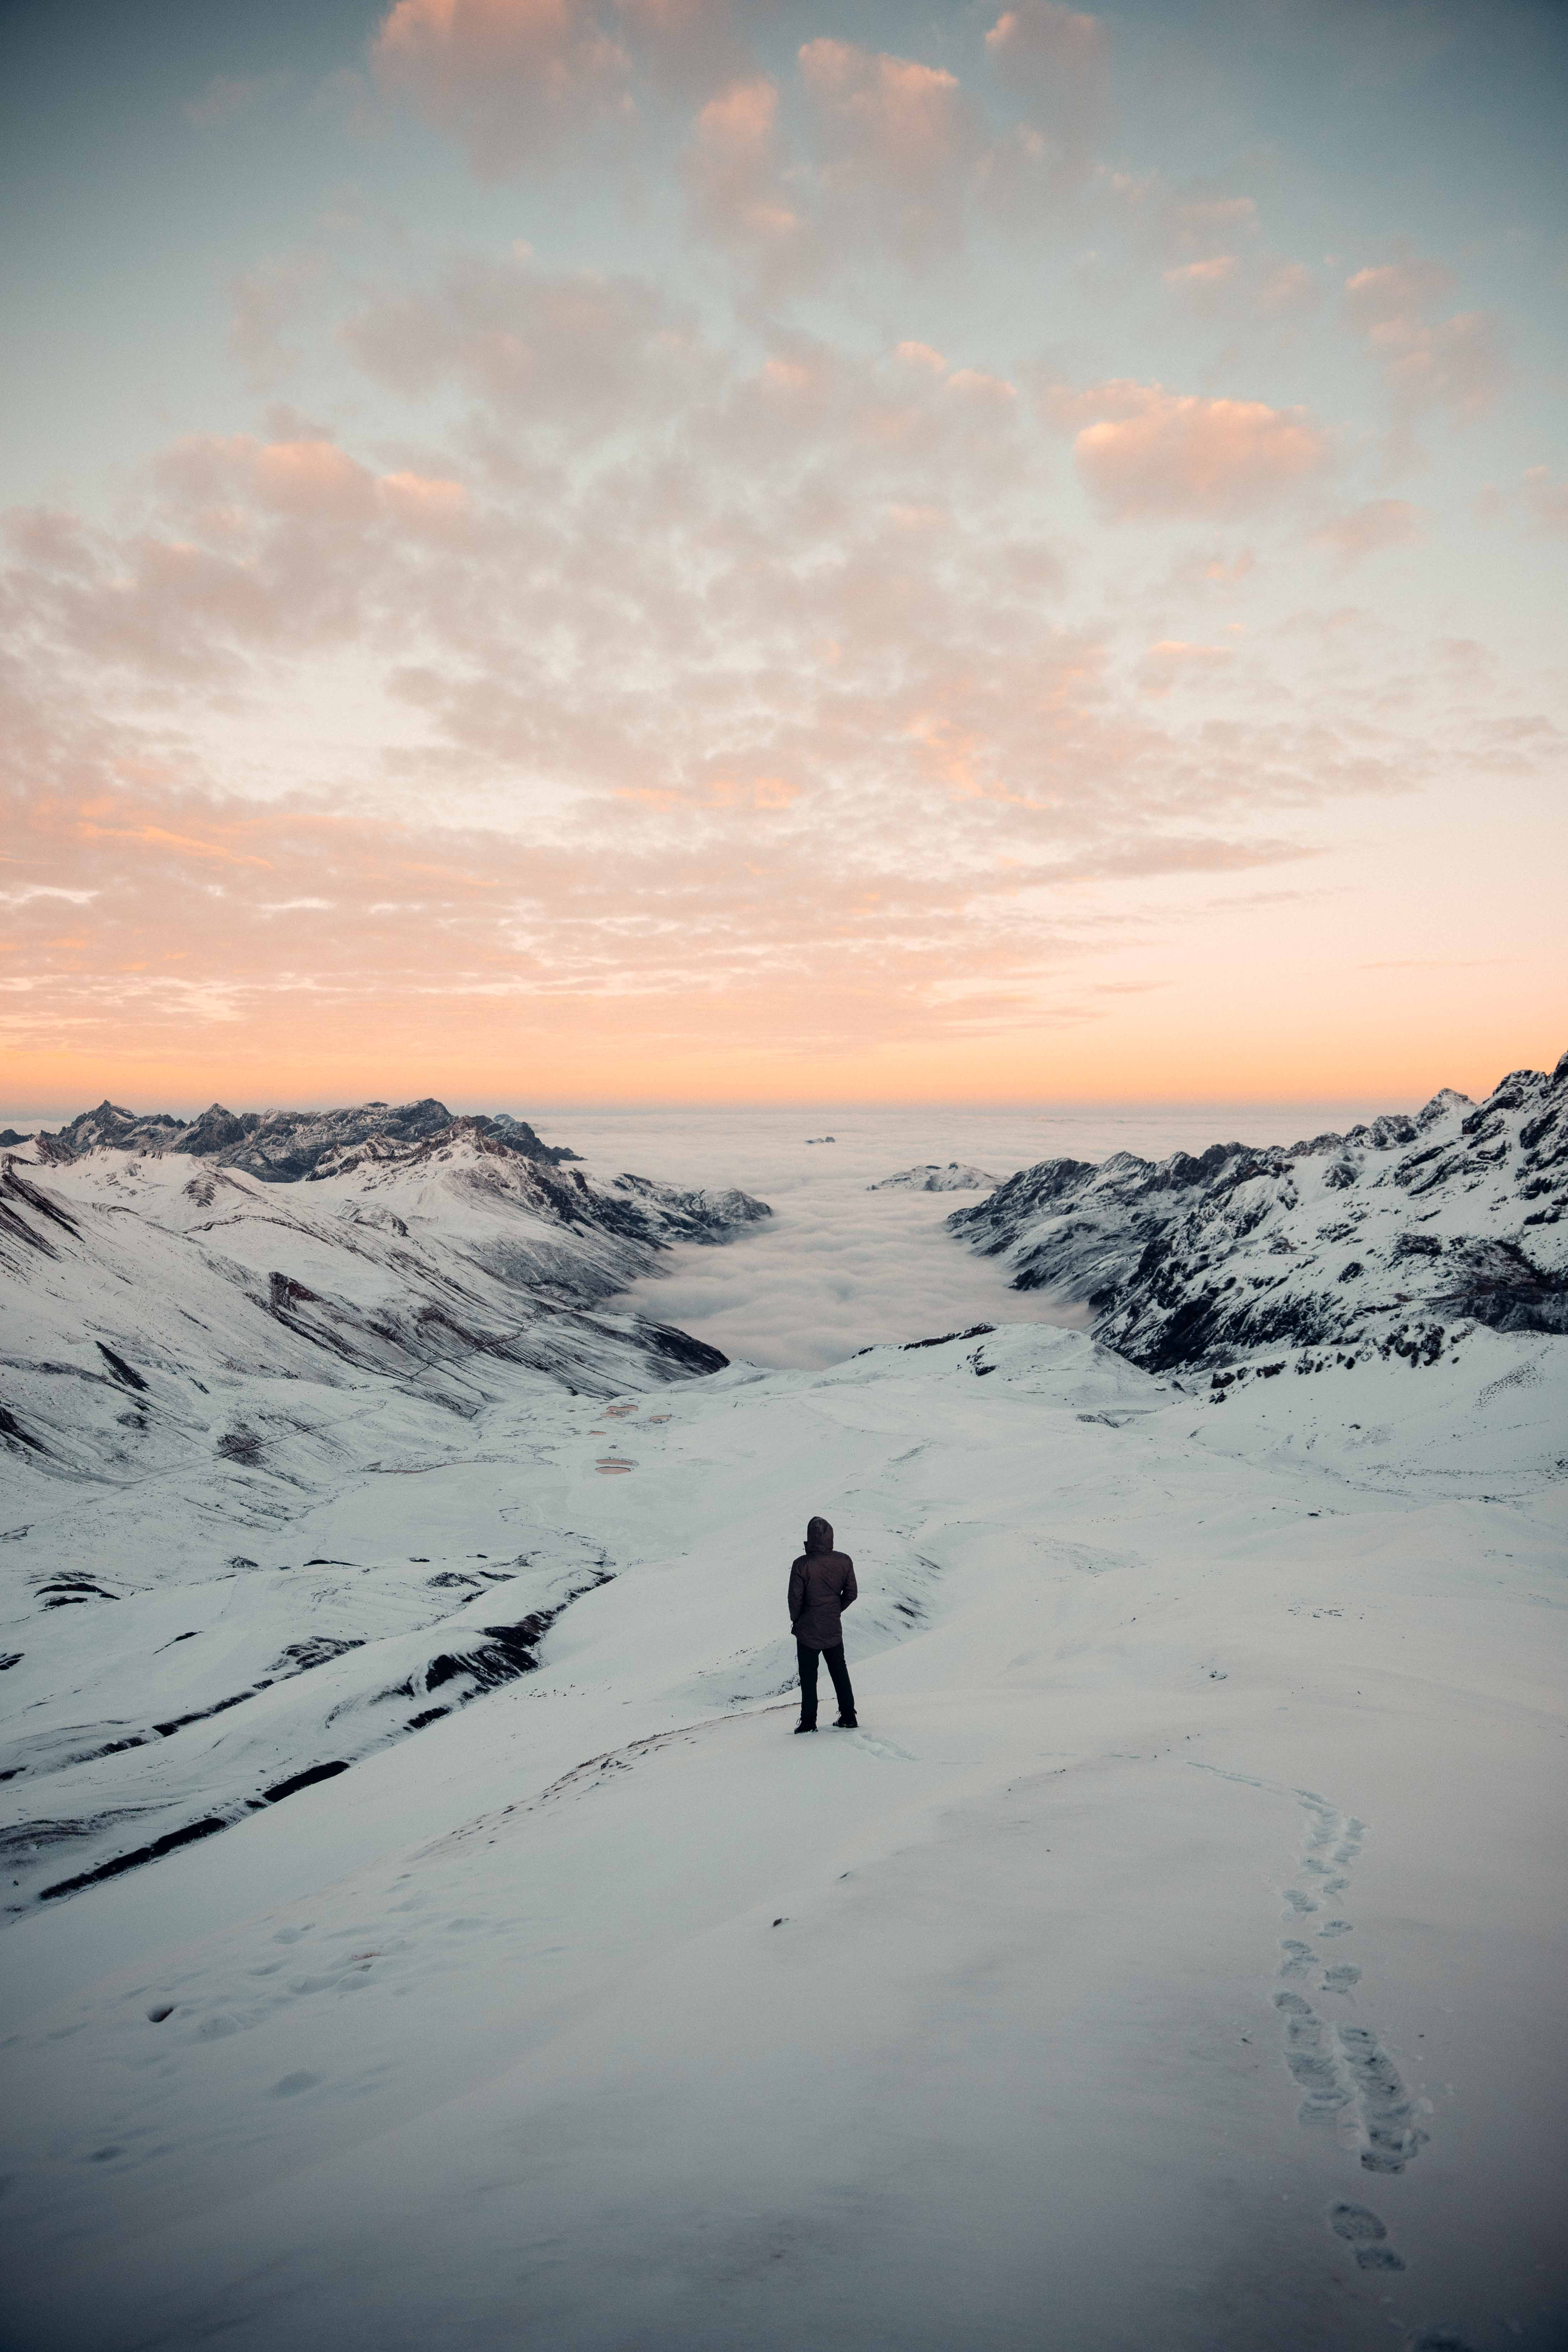 Person Standing in Snowy Field Under White and Orange Skies